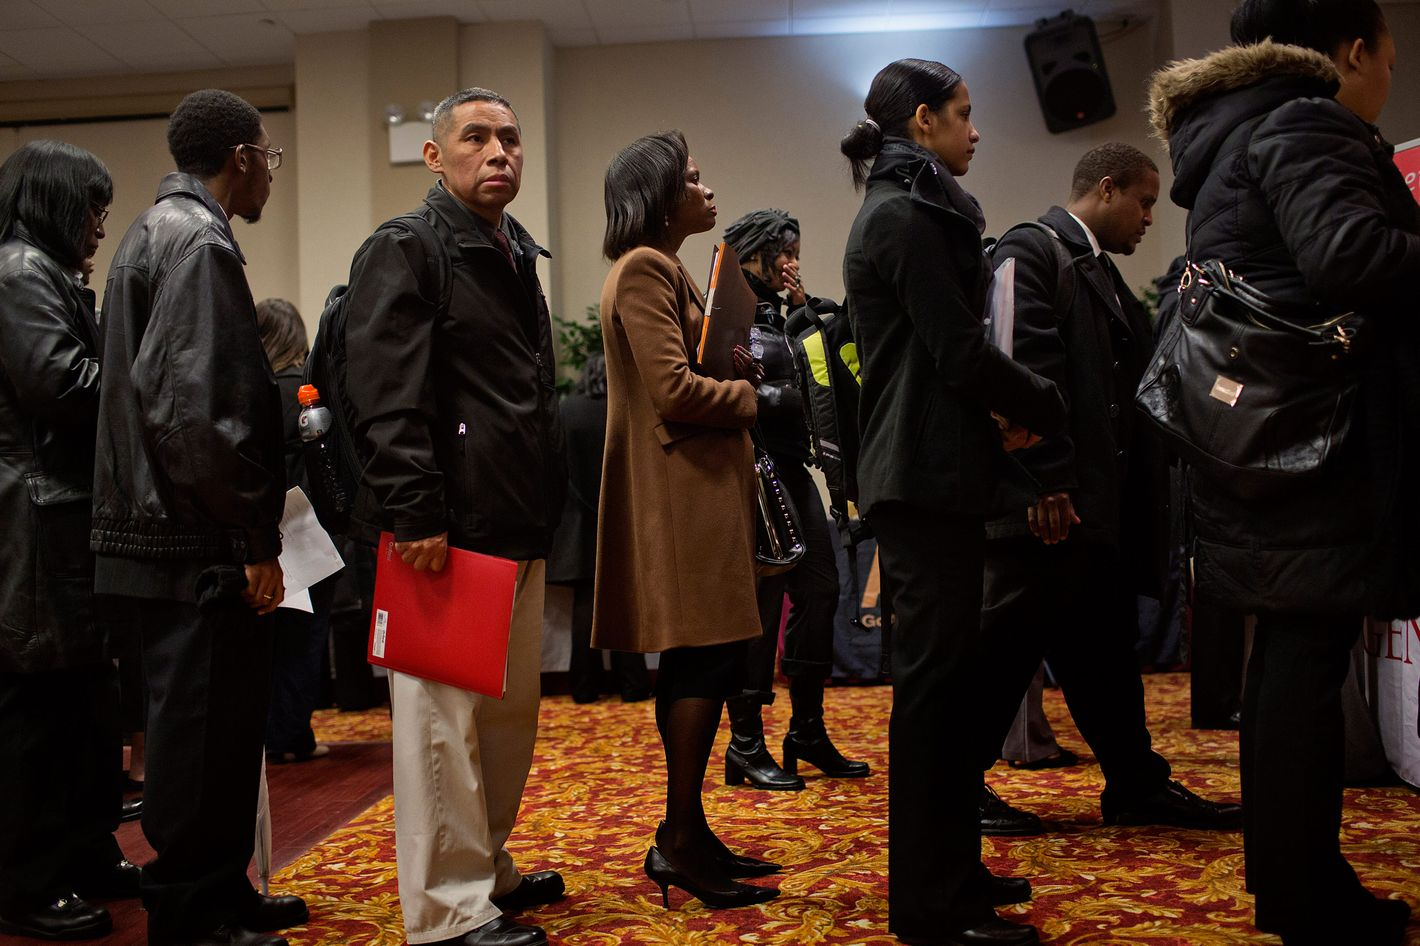 Job seekers wait to talk to recruiters and fill out applications at a job fair in New York, U.S., on Thursday, Jan. 16, 2014.